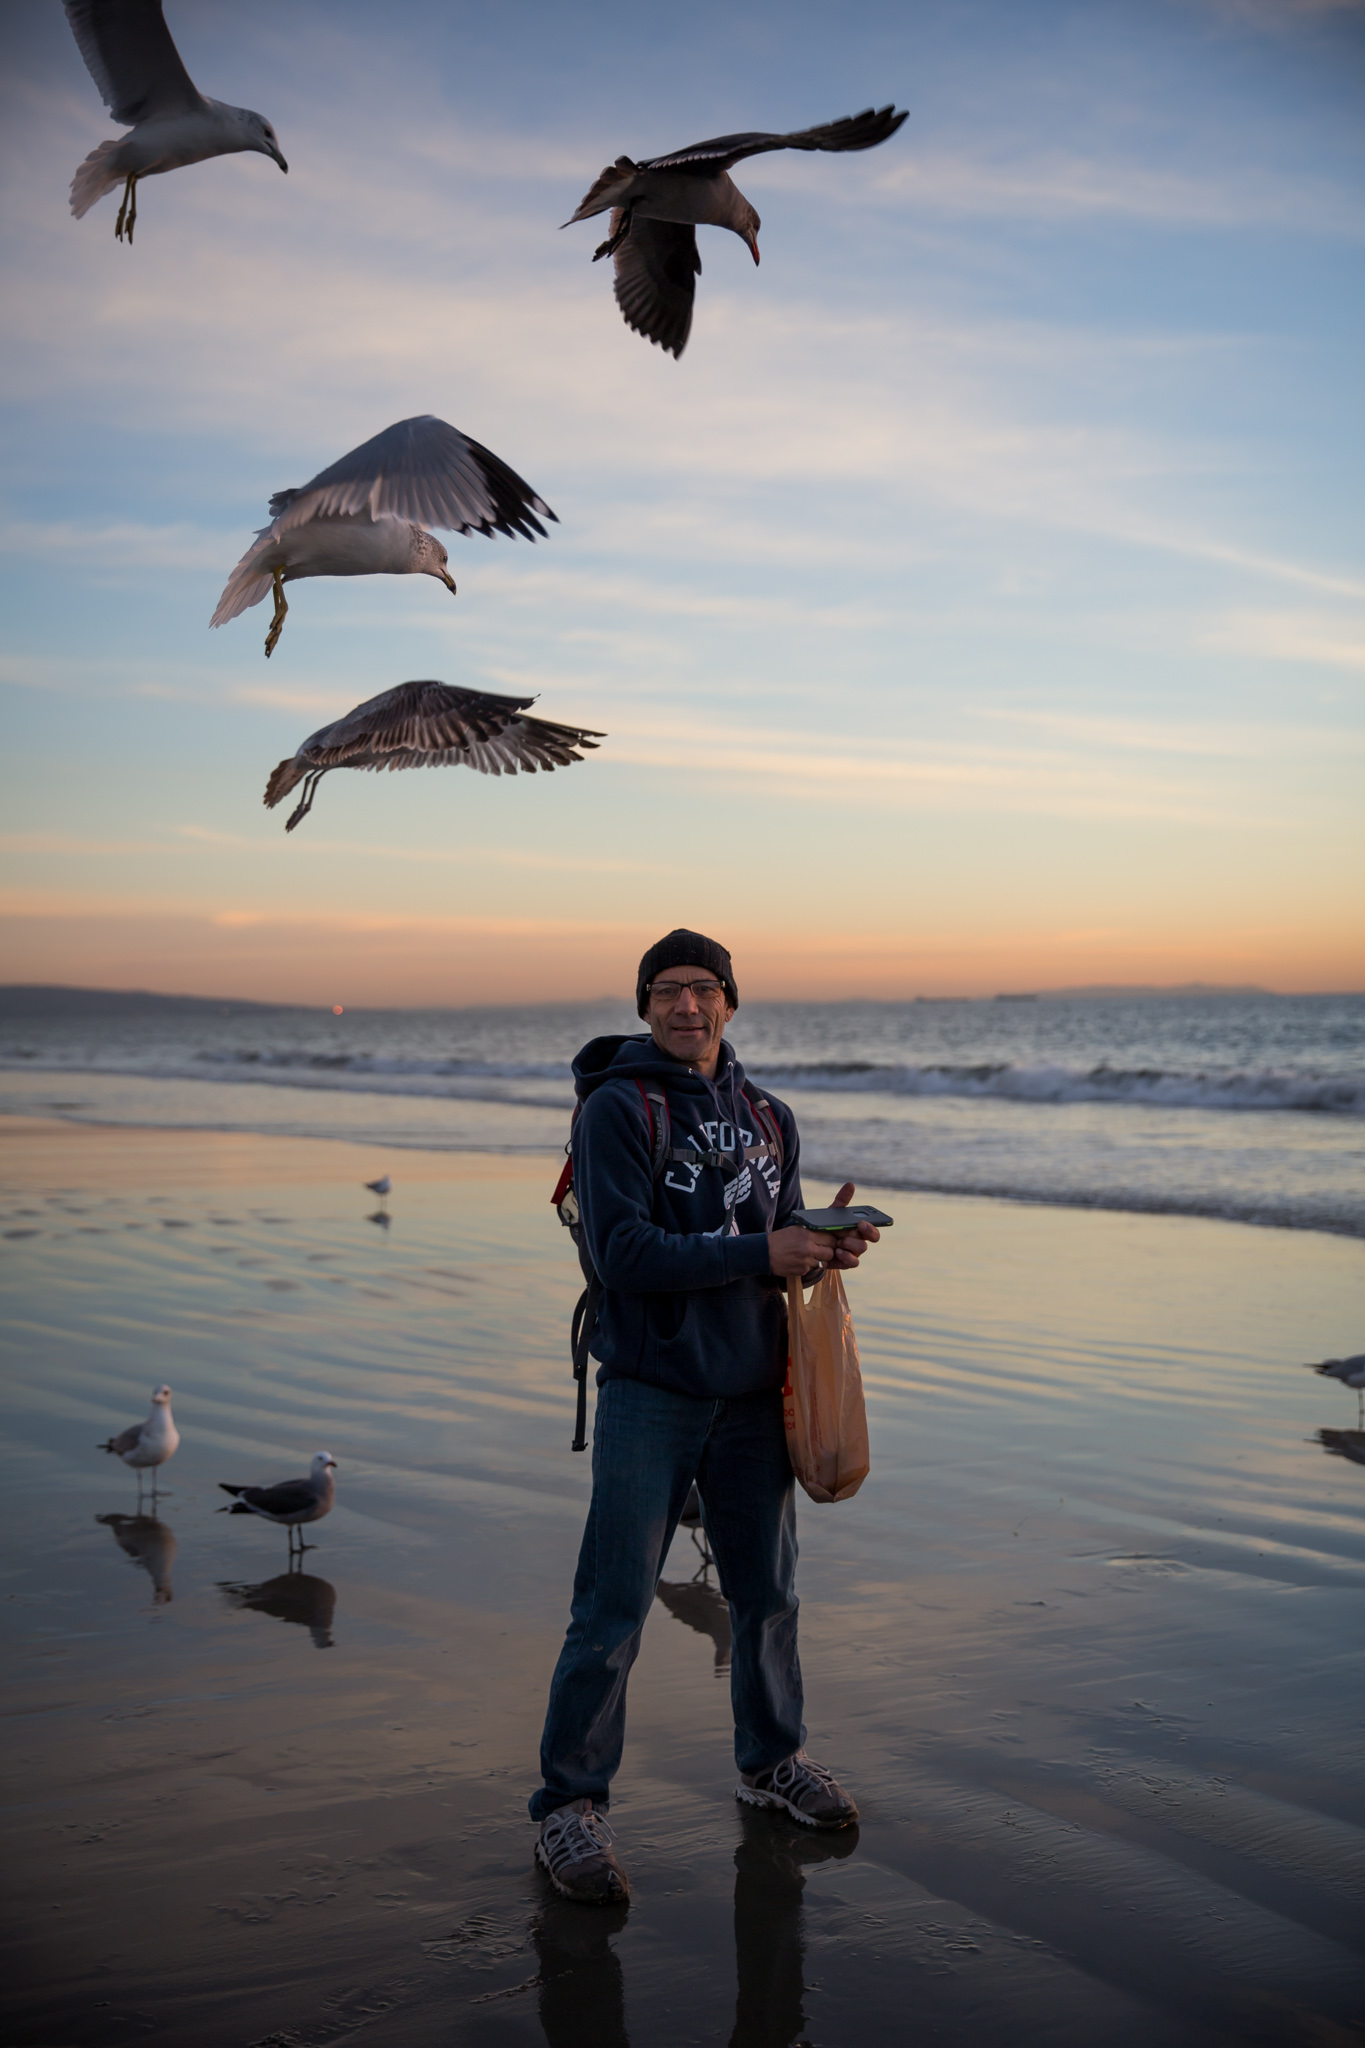 Venice local, Robert, feeds the seagulls at sunrise and sunset